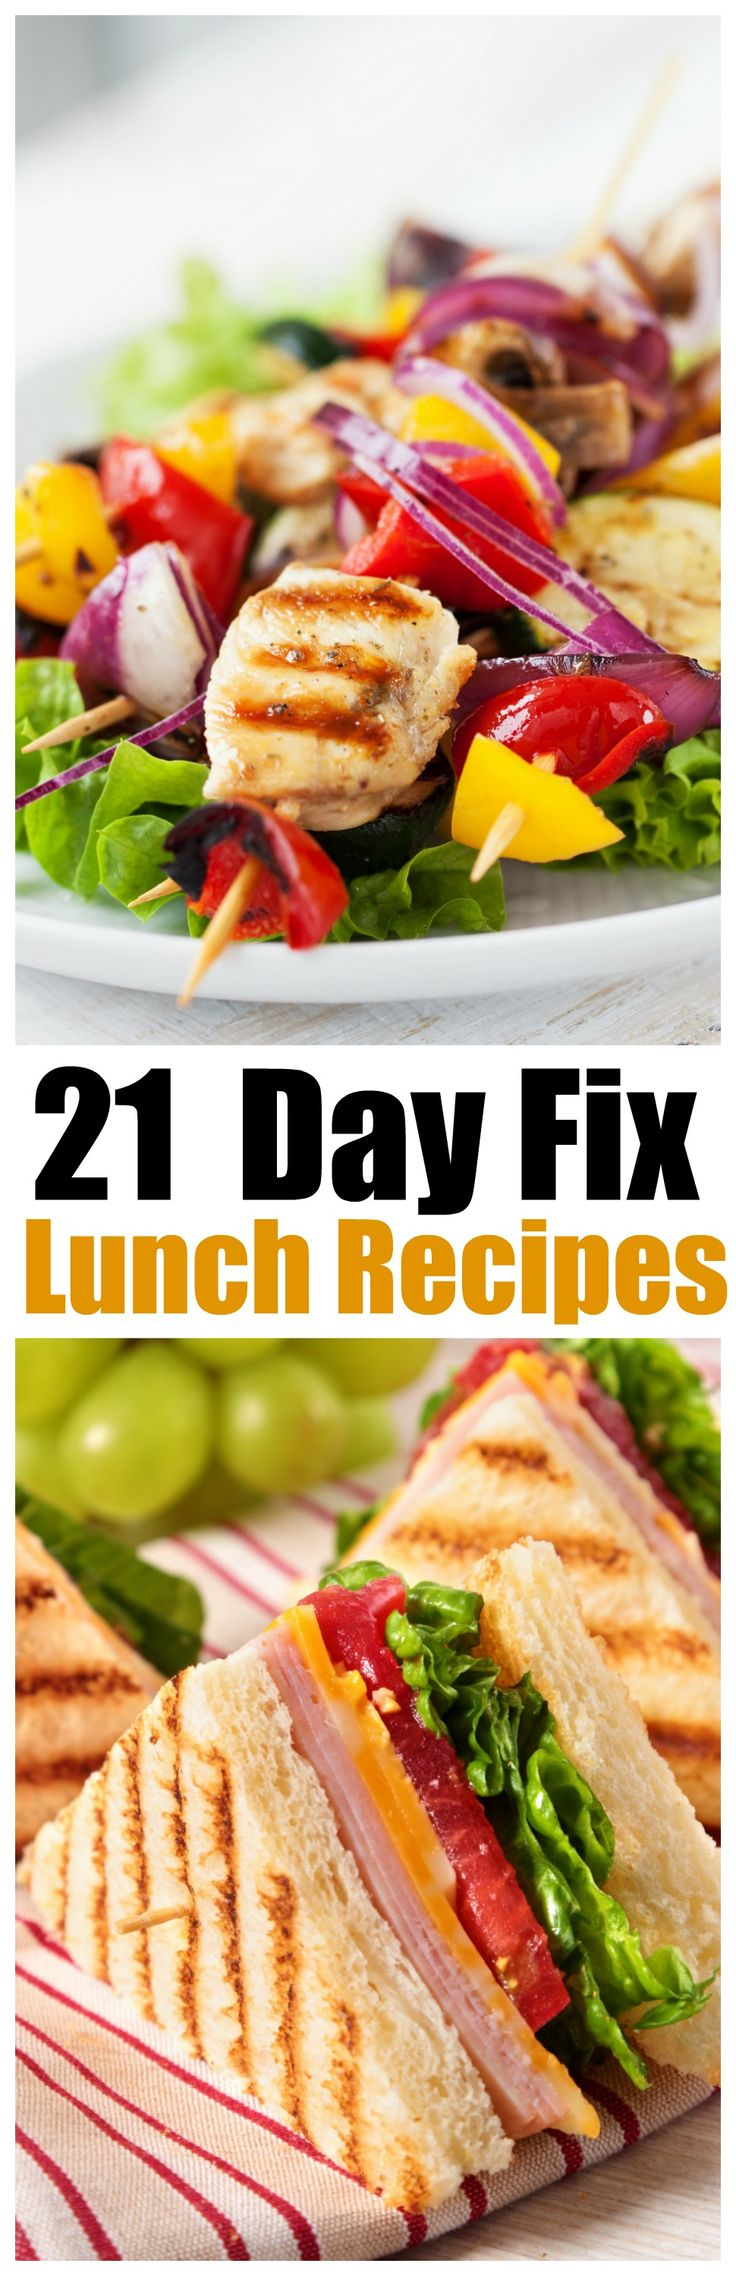 21-Day Fix Lunch Recipes, Get a lunch for Every work day of the month with these 20 21-day fix recipes